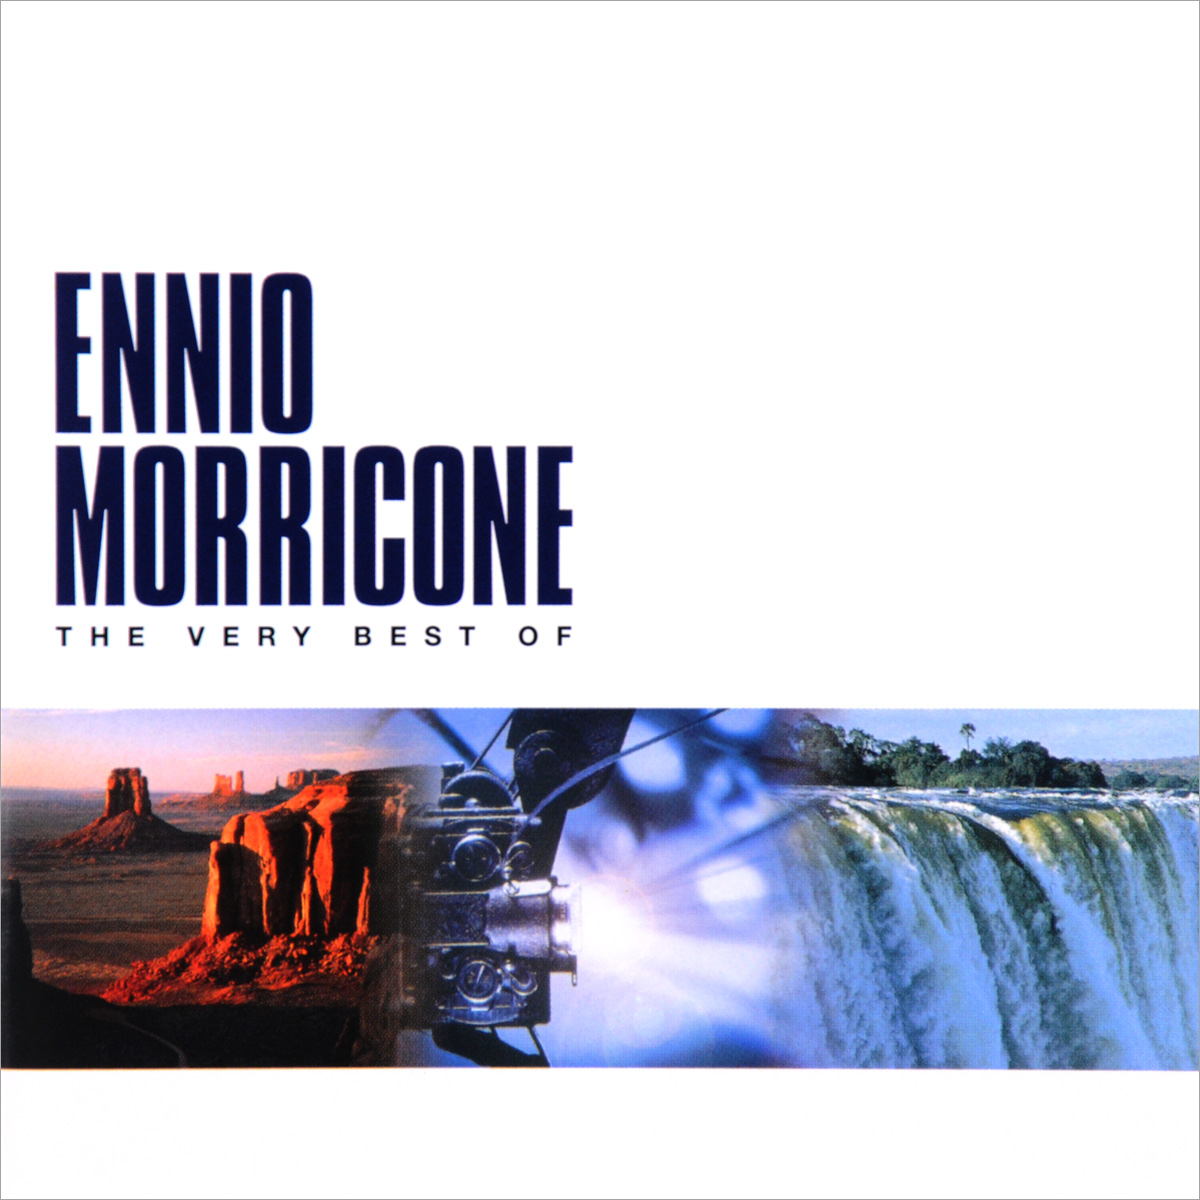 Эннио Морриконе Ennio Morricone. The Very Best Of Ennio Morricone эннио морриконе ennio morricone la notte e il momento lp